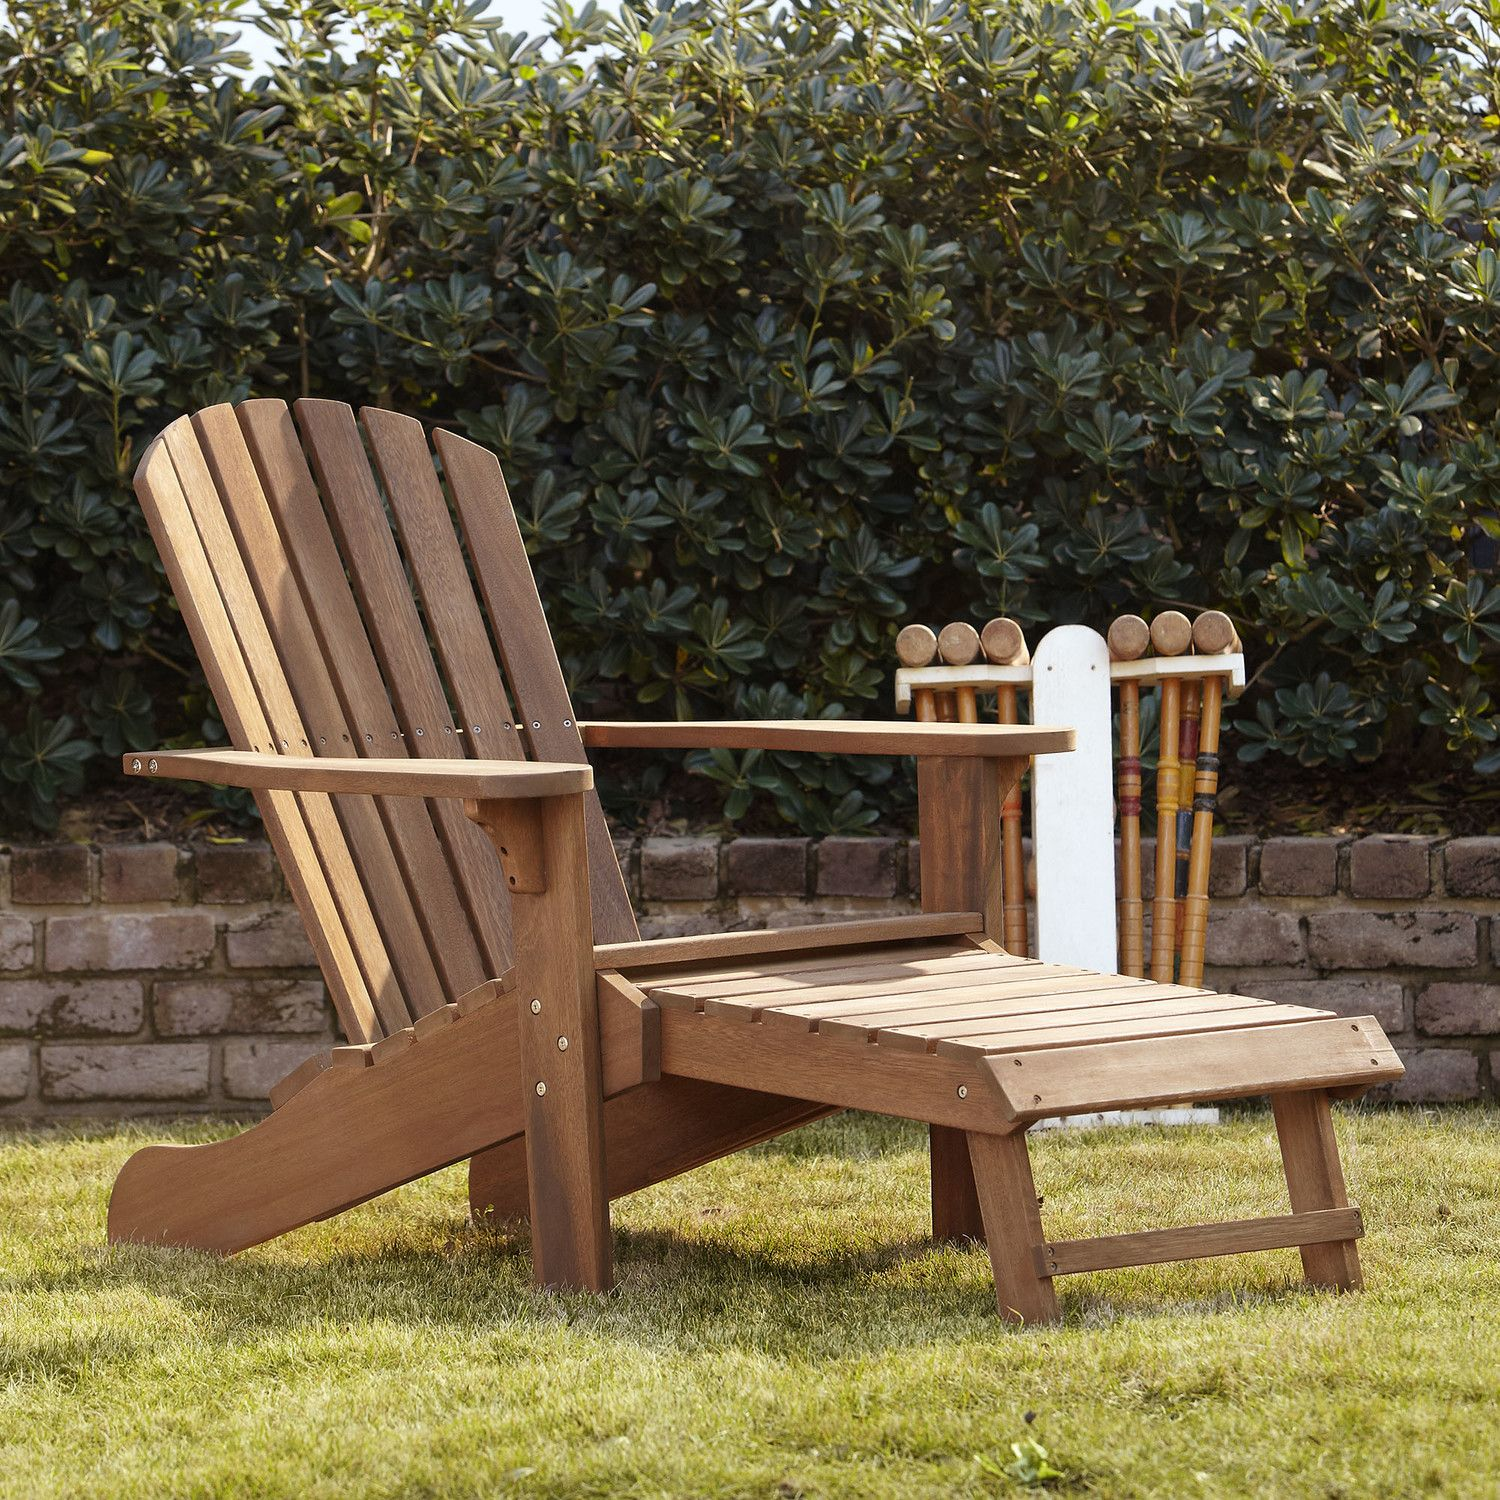 Vista Adirondack Chair With Built In Ottoman Wood Adirondack Chairs Adirondack Chair Wood Patio Chairs Wooden adirondack chairs on sale